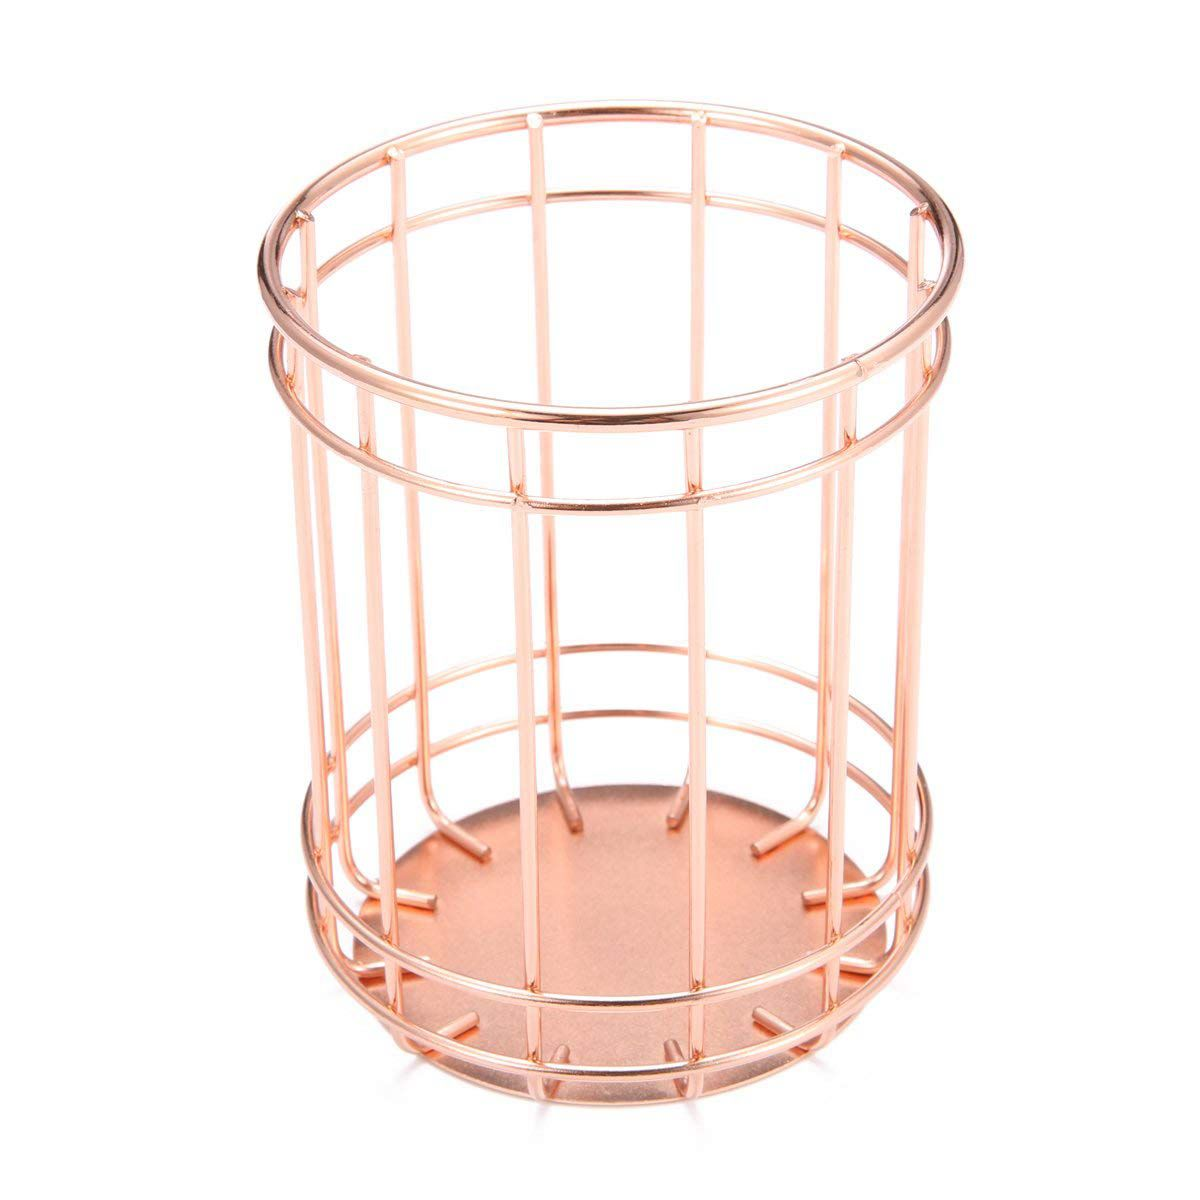 Rose Gold Wire Net Pencil Holder Round Iron Mesh Pen Cup Stationery Organizer Desk Sorter For Office Home School Traveling Pen Holders